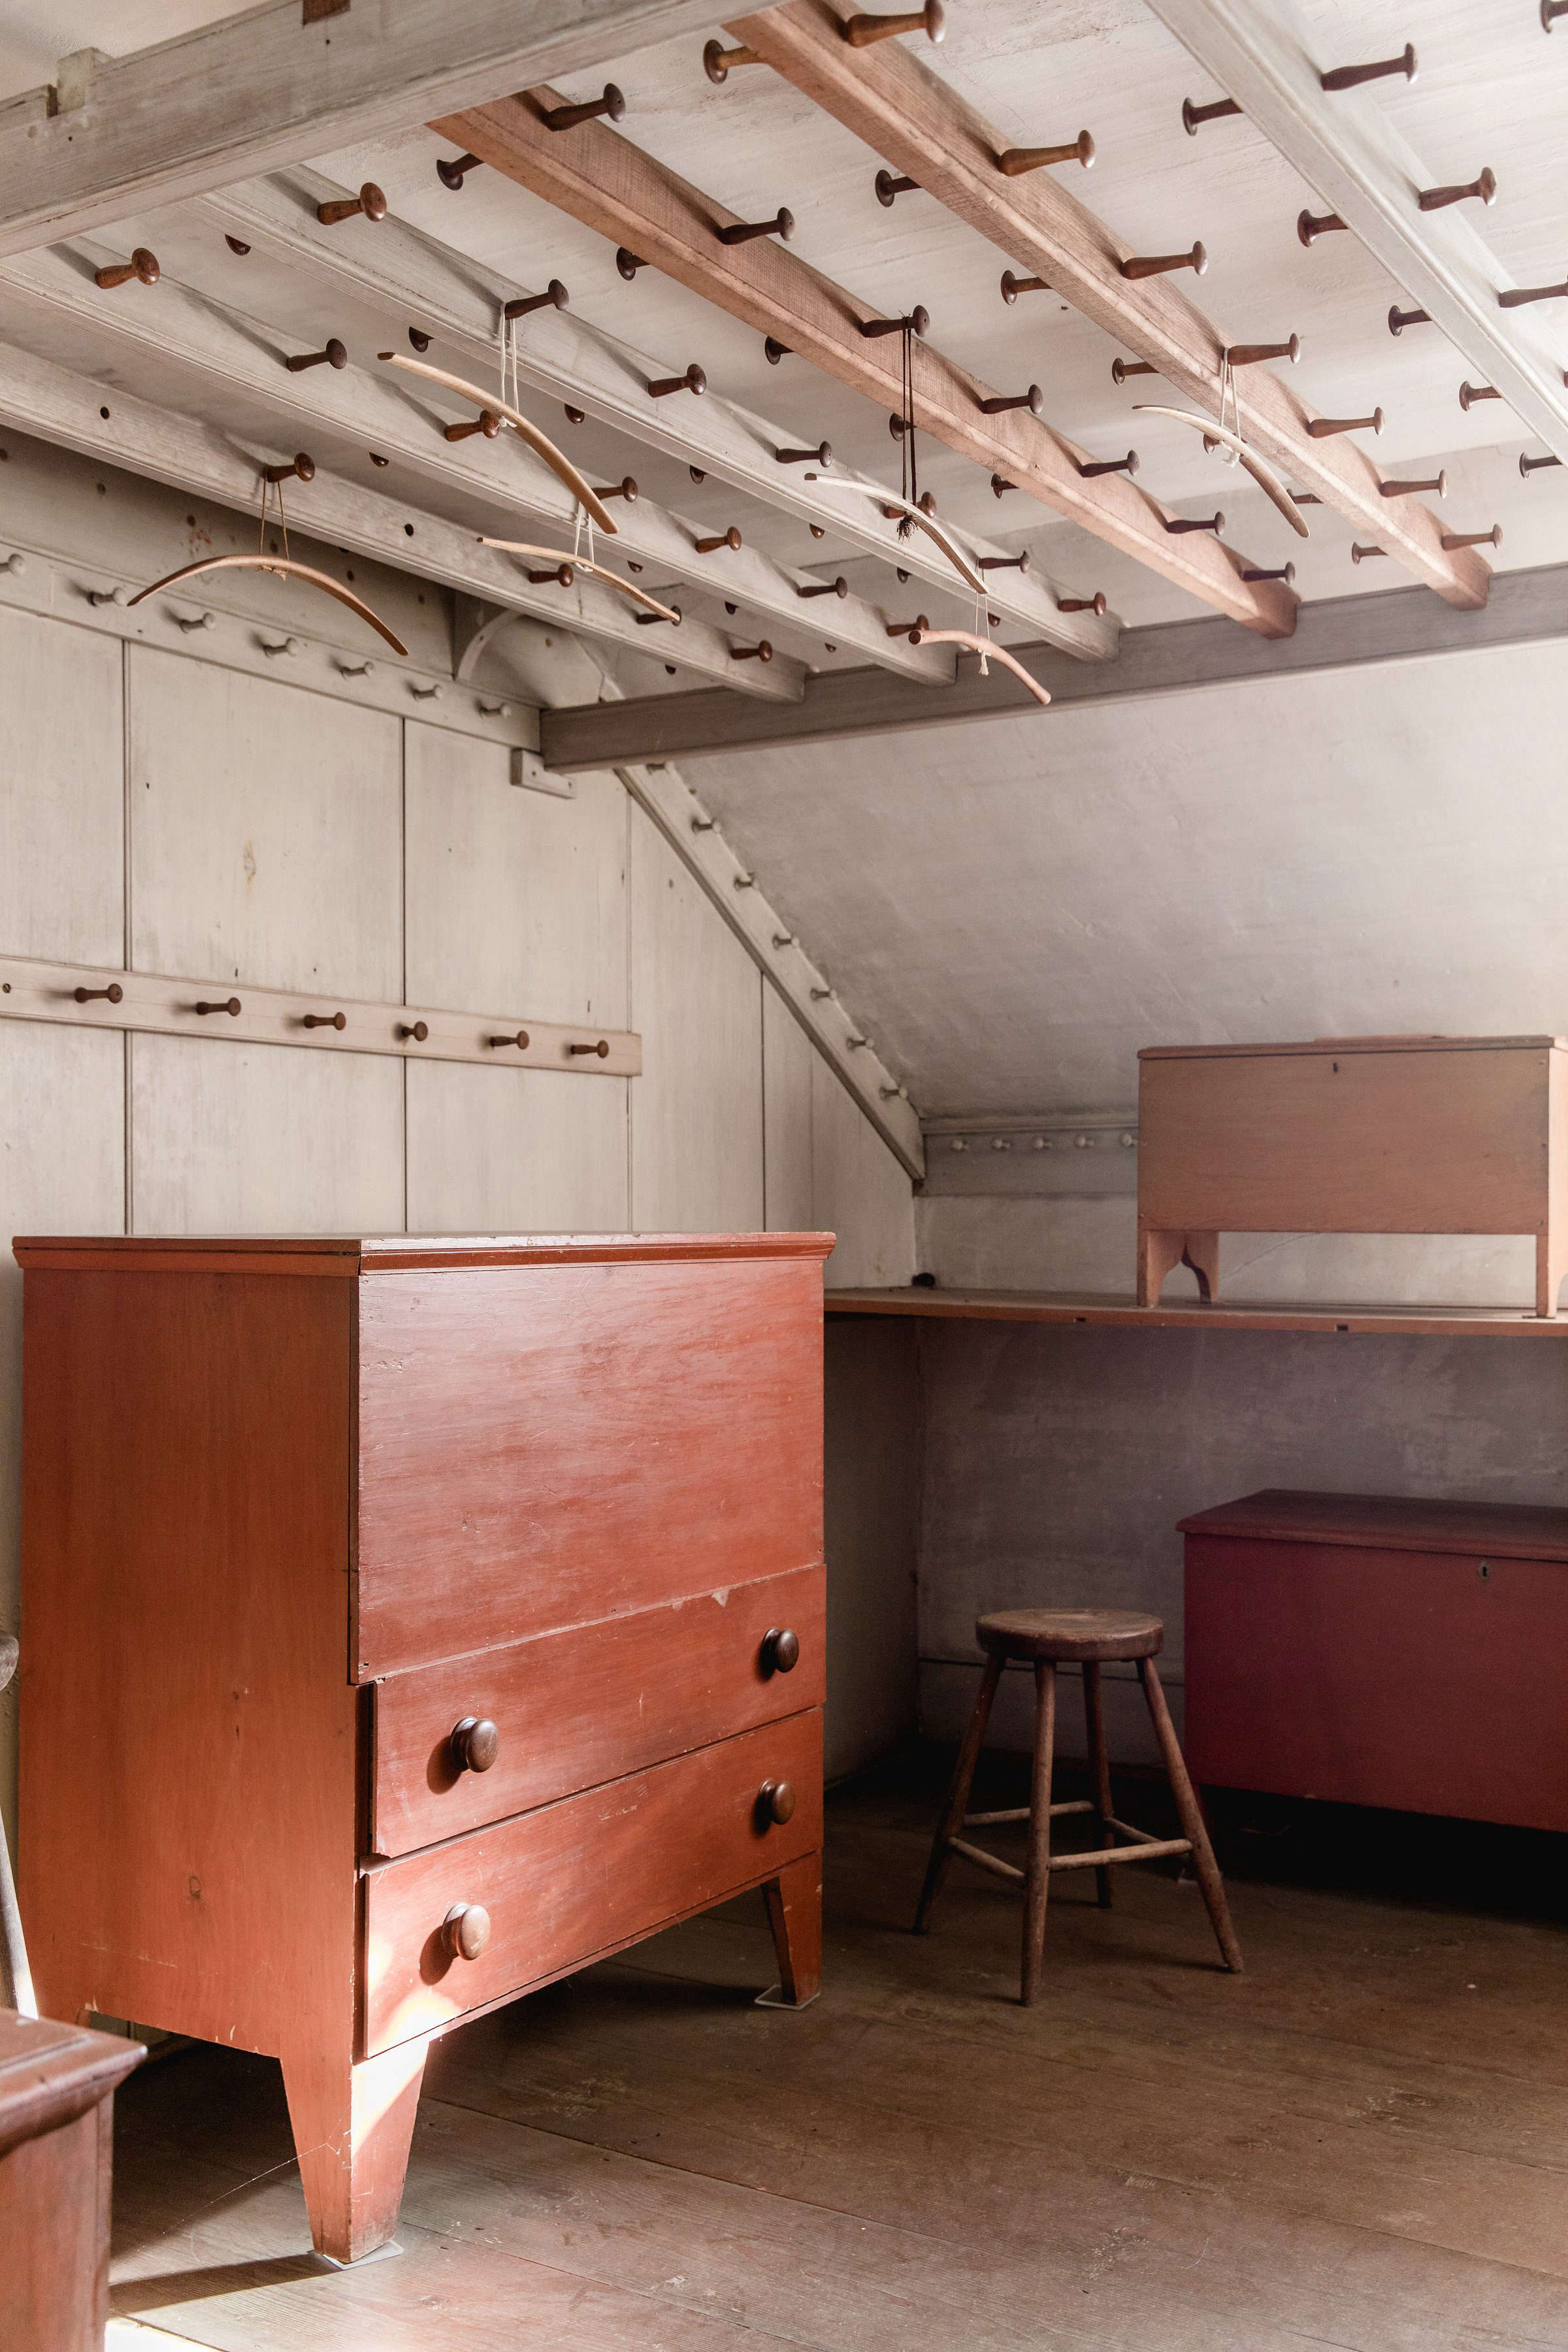 Closet with Peg Rails at Canterbury Shaker Village, Photo by Erin Little